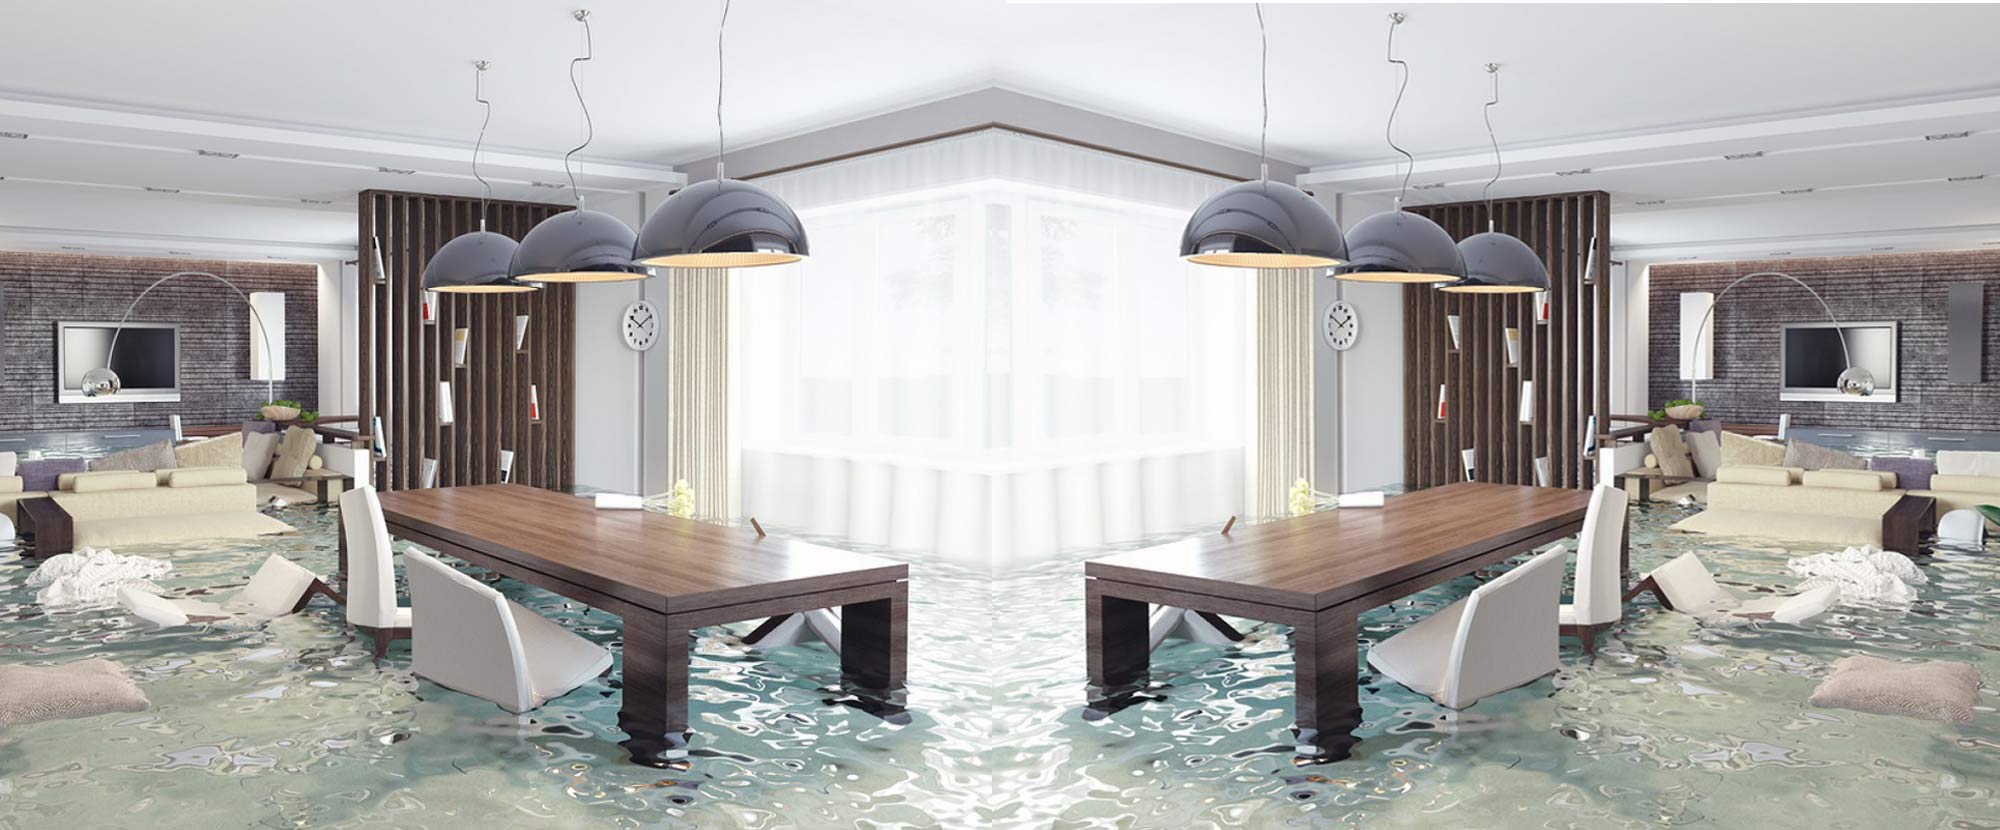 Water Damage Restoration in Kalispell, Whitefish, and Columbia Falls MT